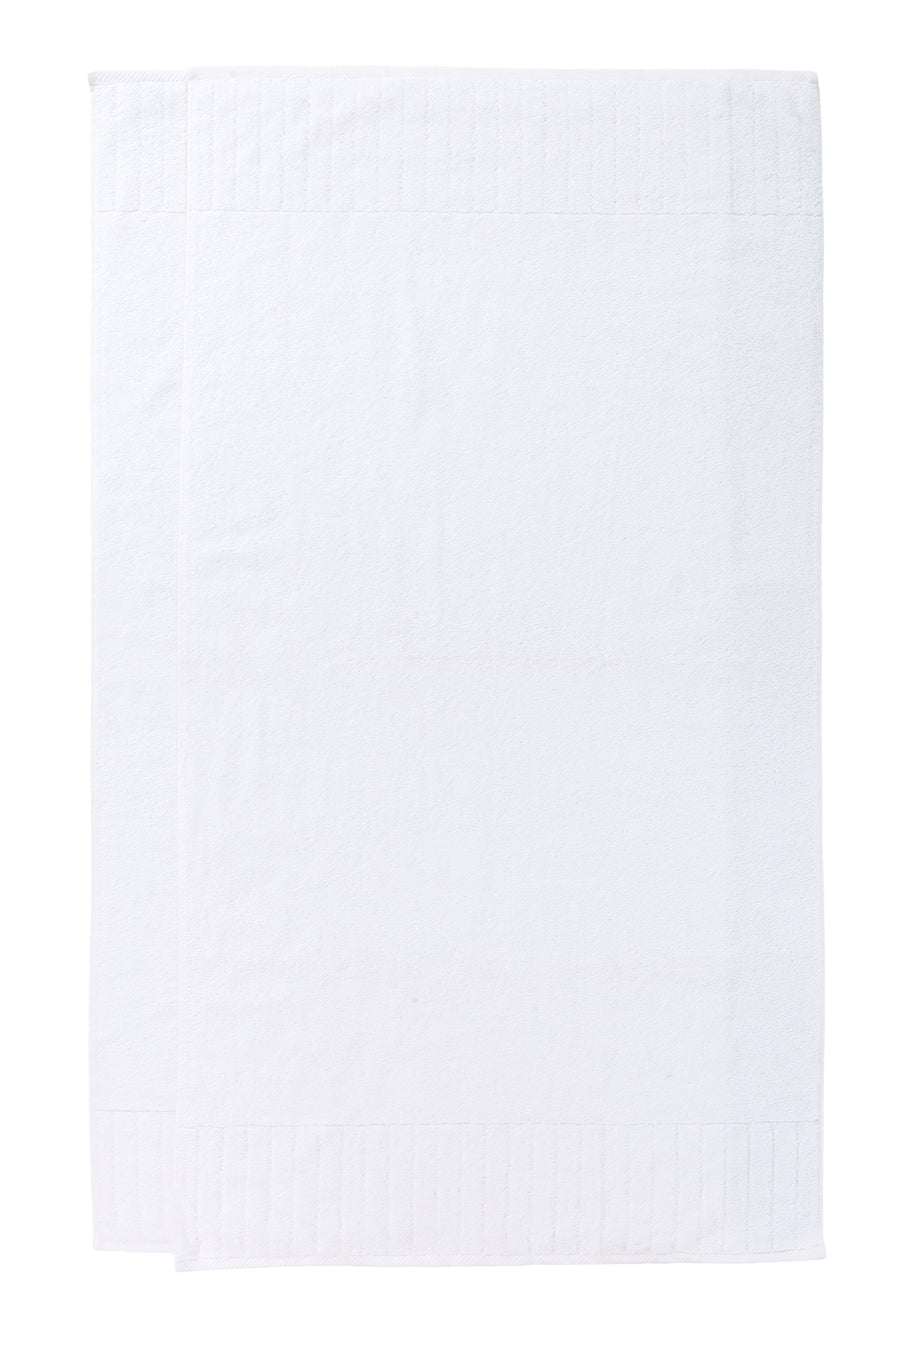 Bath Towels - Organic Cotton Dobby - 2 pack - TexereSilk